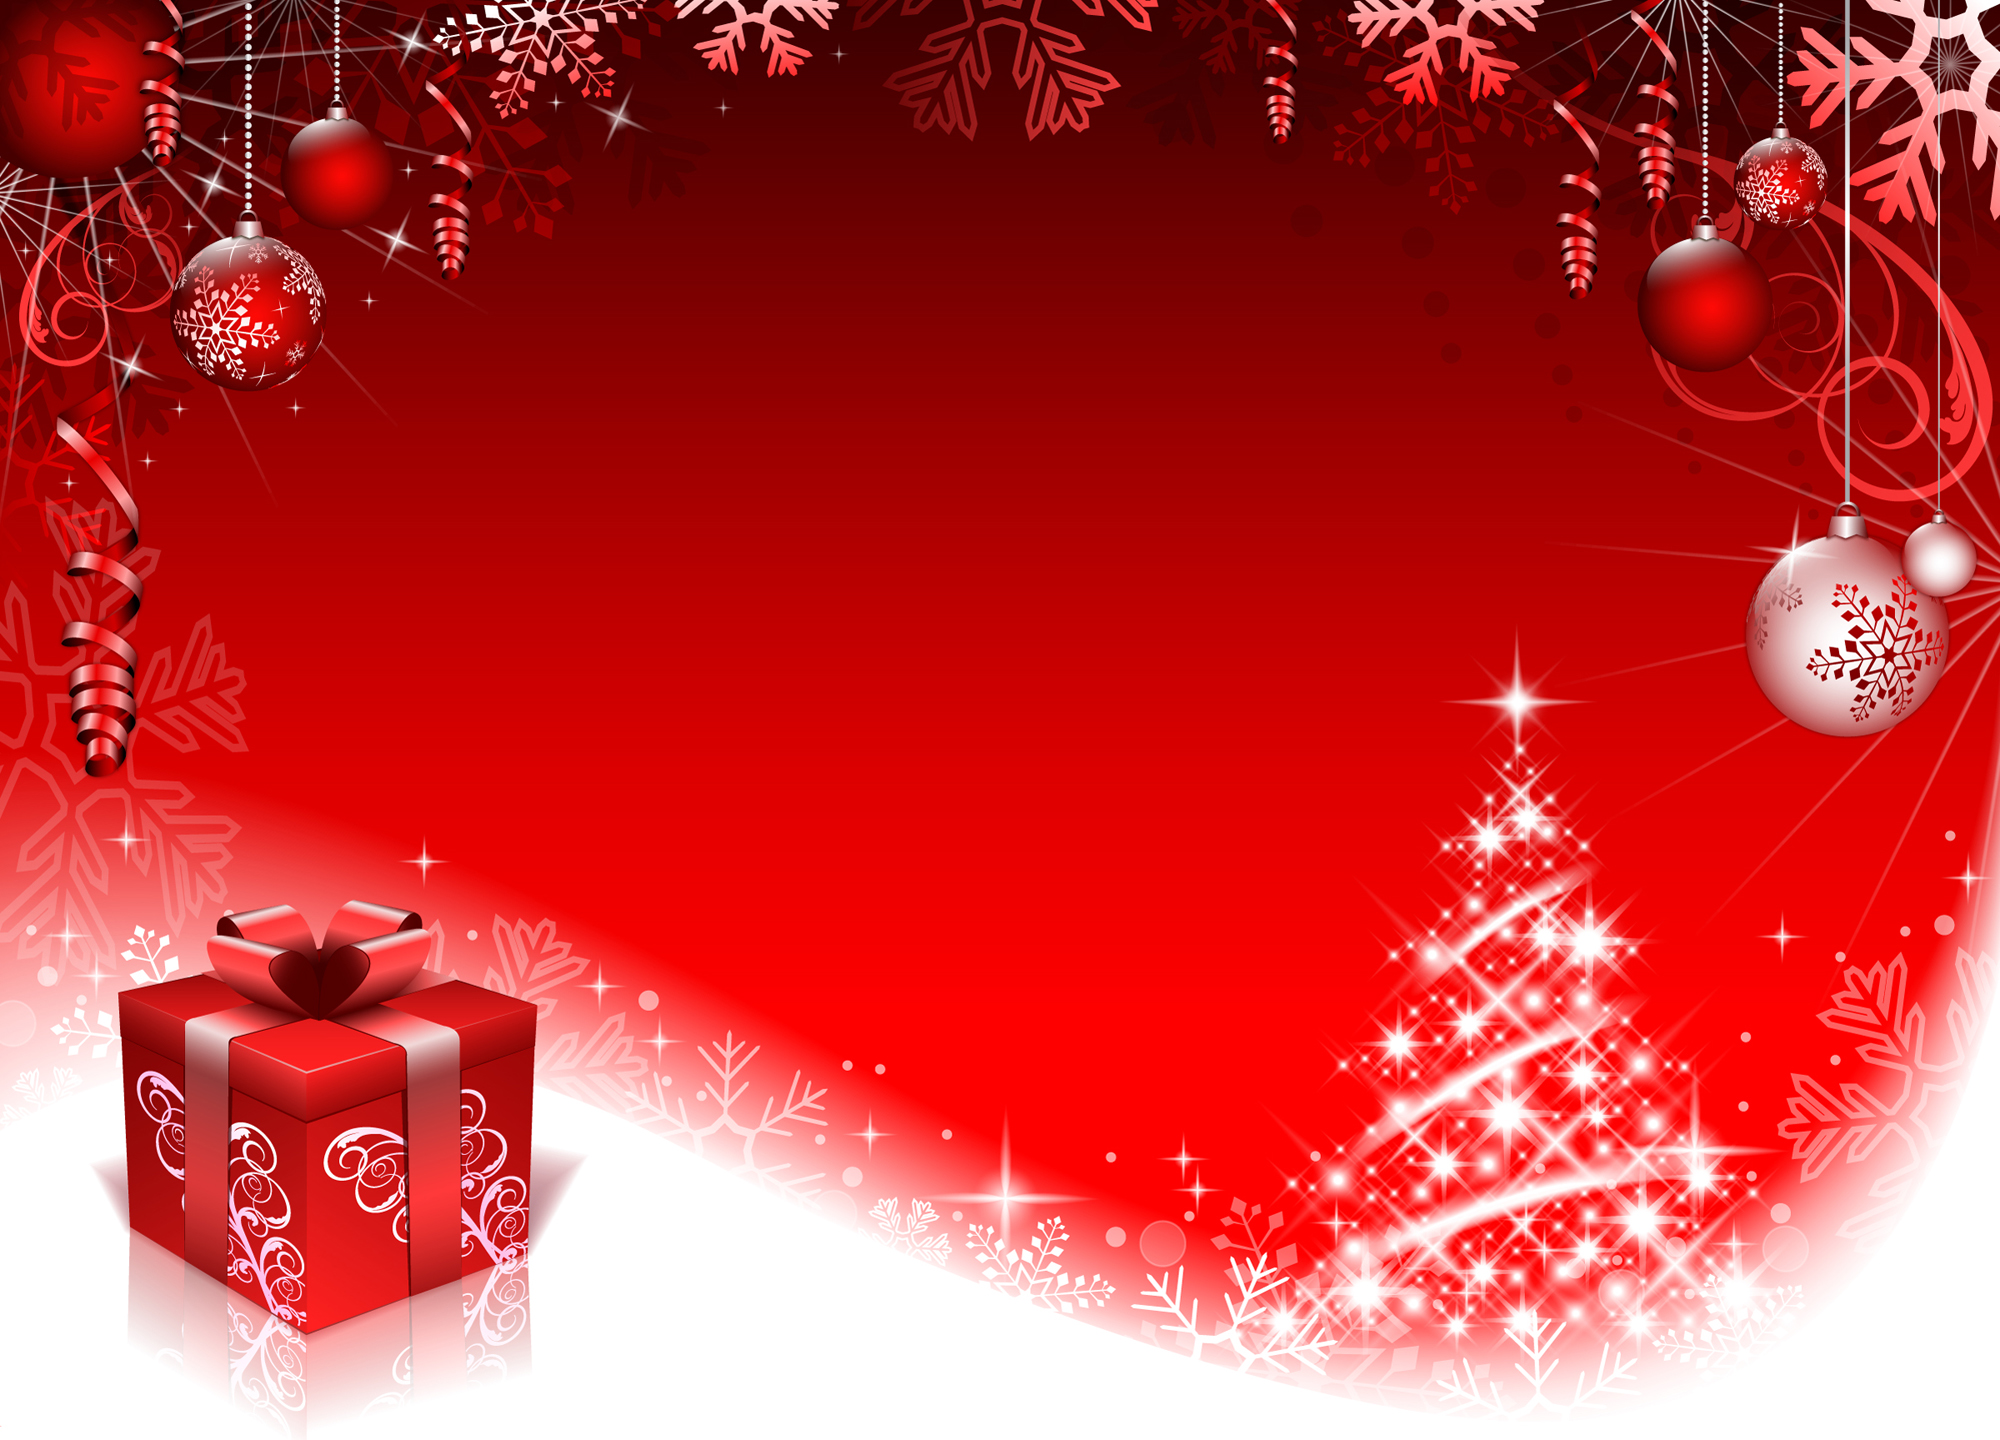 16 free psd christmas templates for photoshop images free red